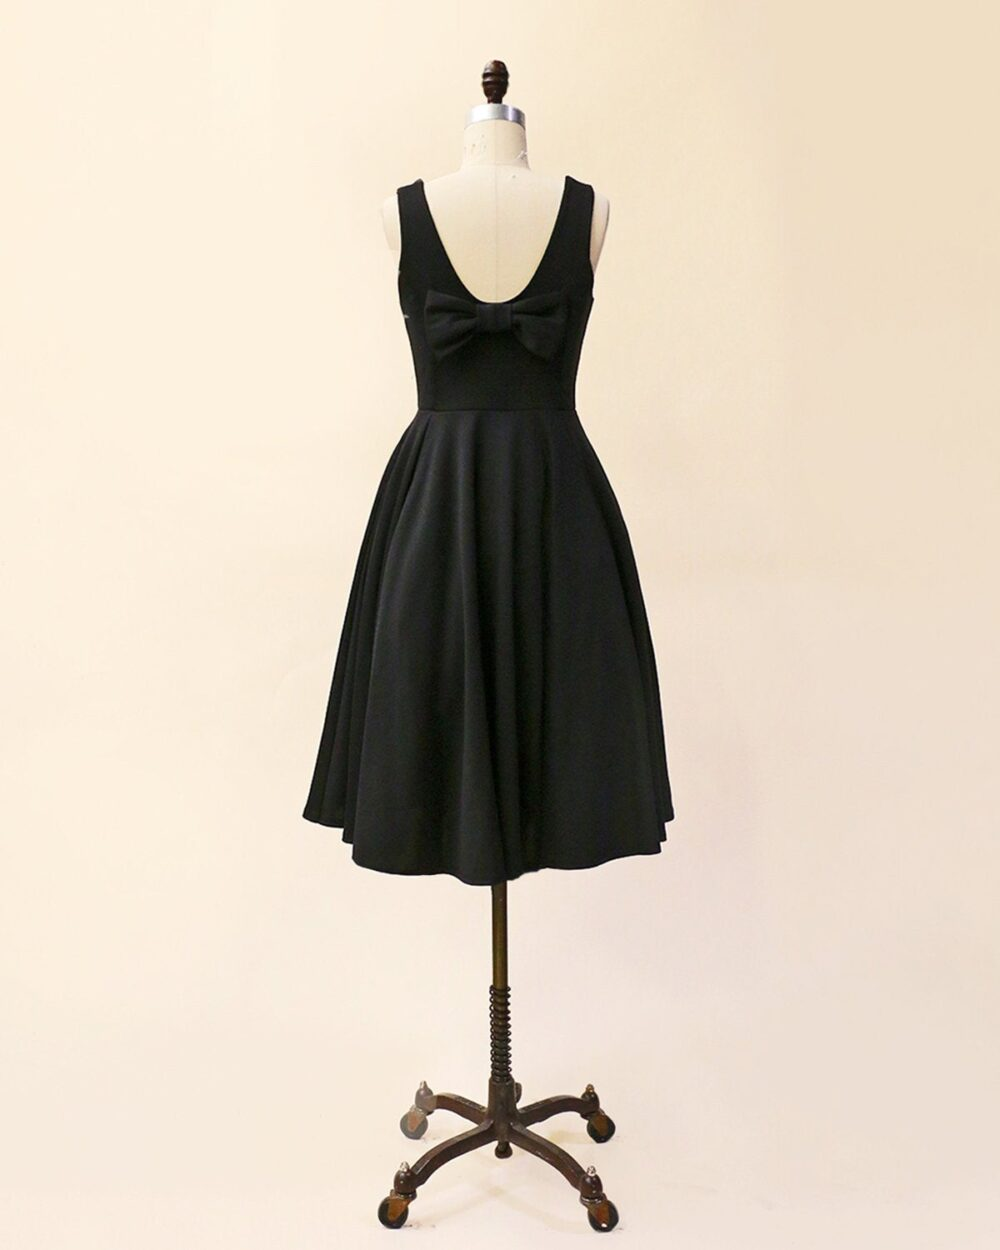 Cora | Black. Little Black Dress With Midi Circle Skirt. Scoop Neck Vintage Inspired Party Dress. Bridesmaid